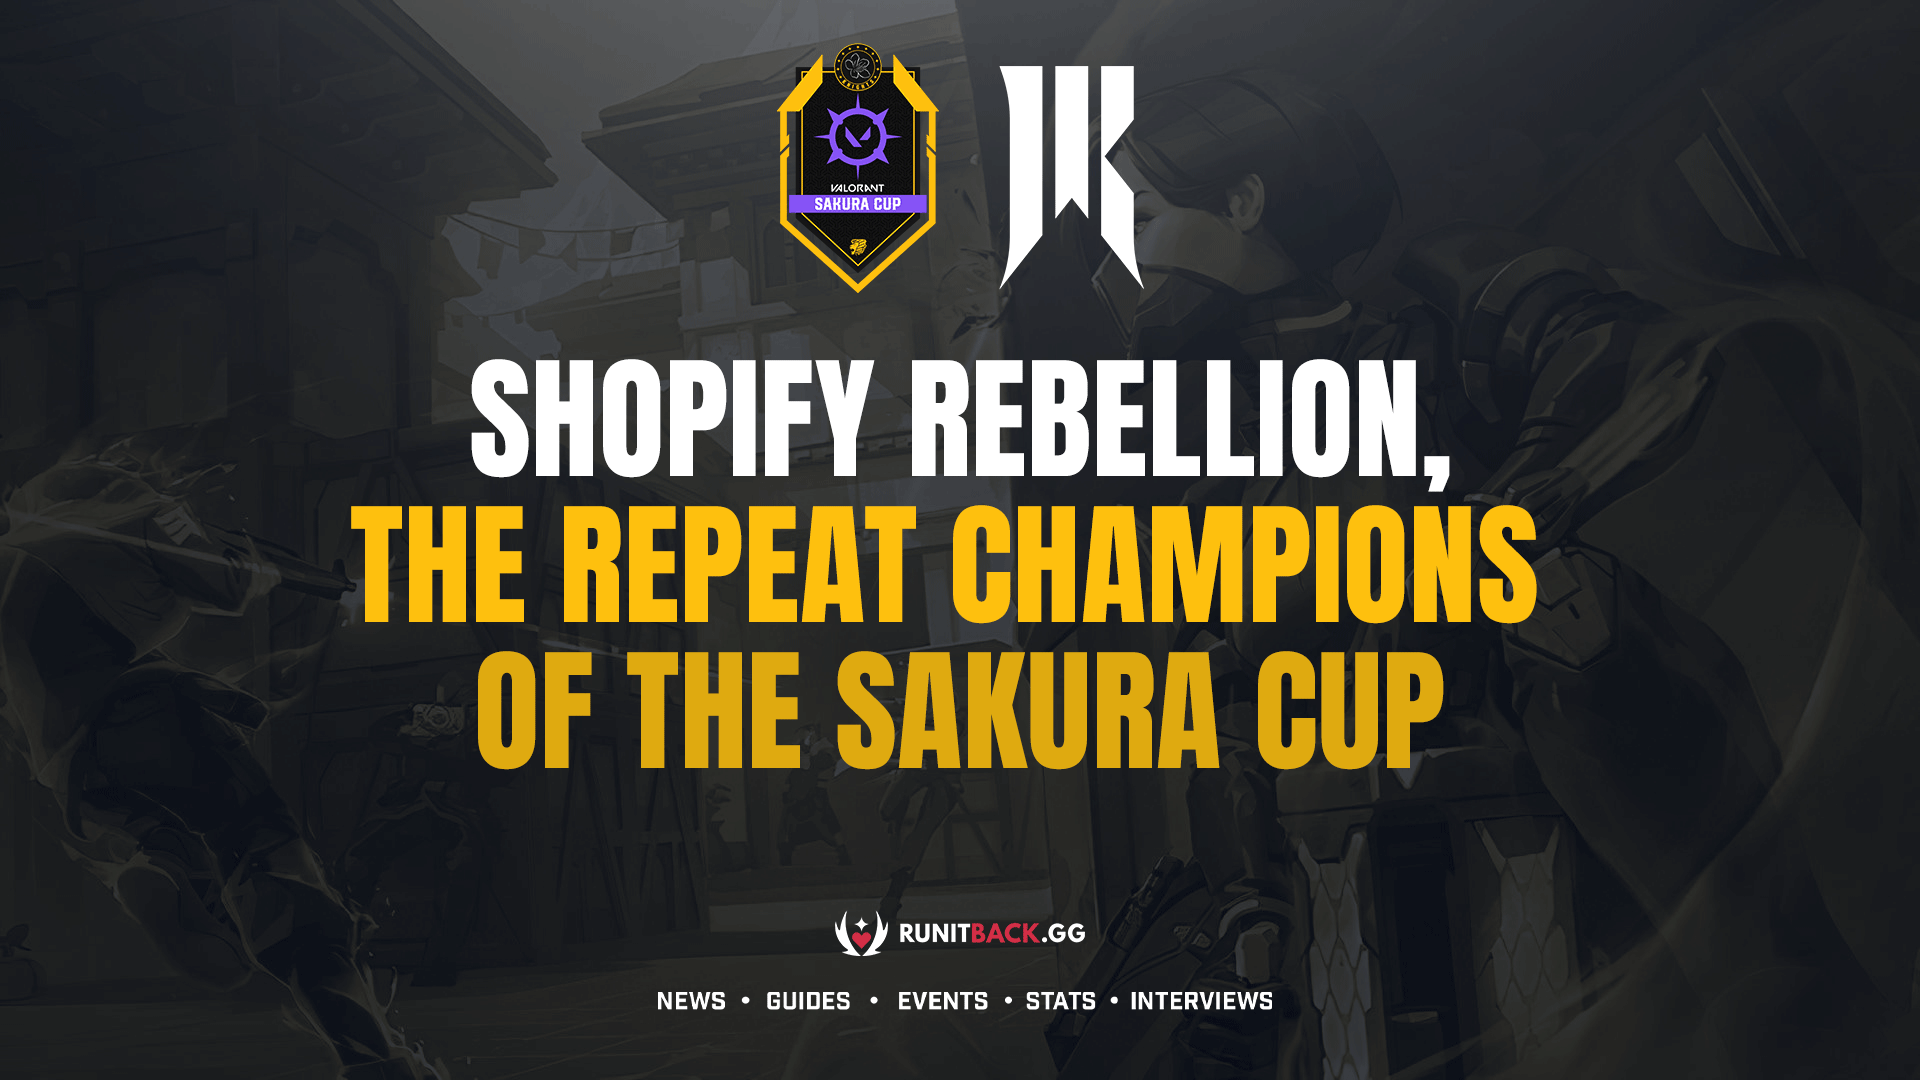 Shopify Rebellion, The Repeat Champions of the Sakura Cup